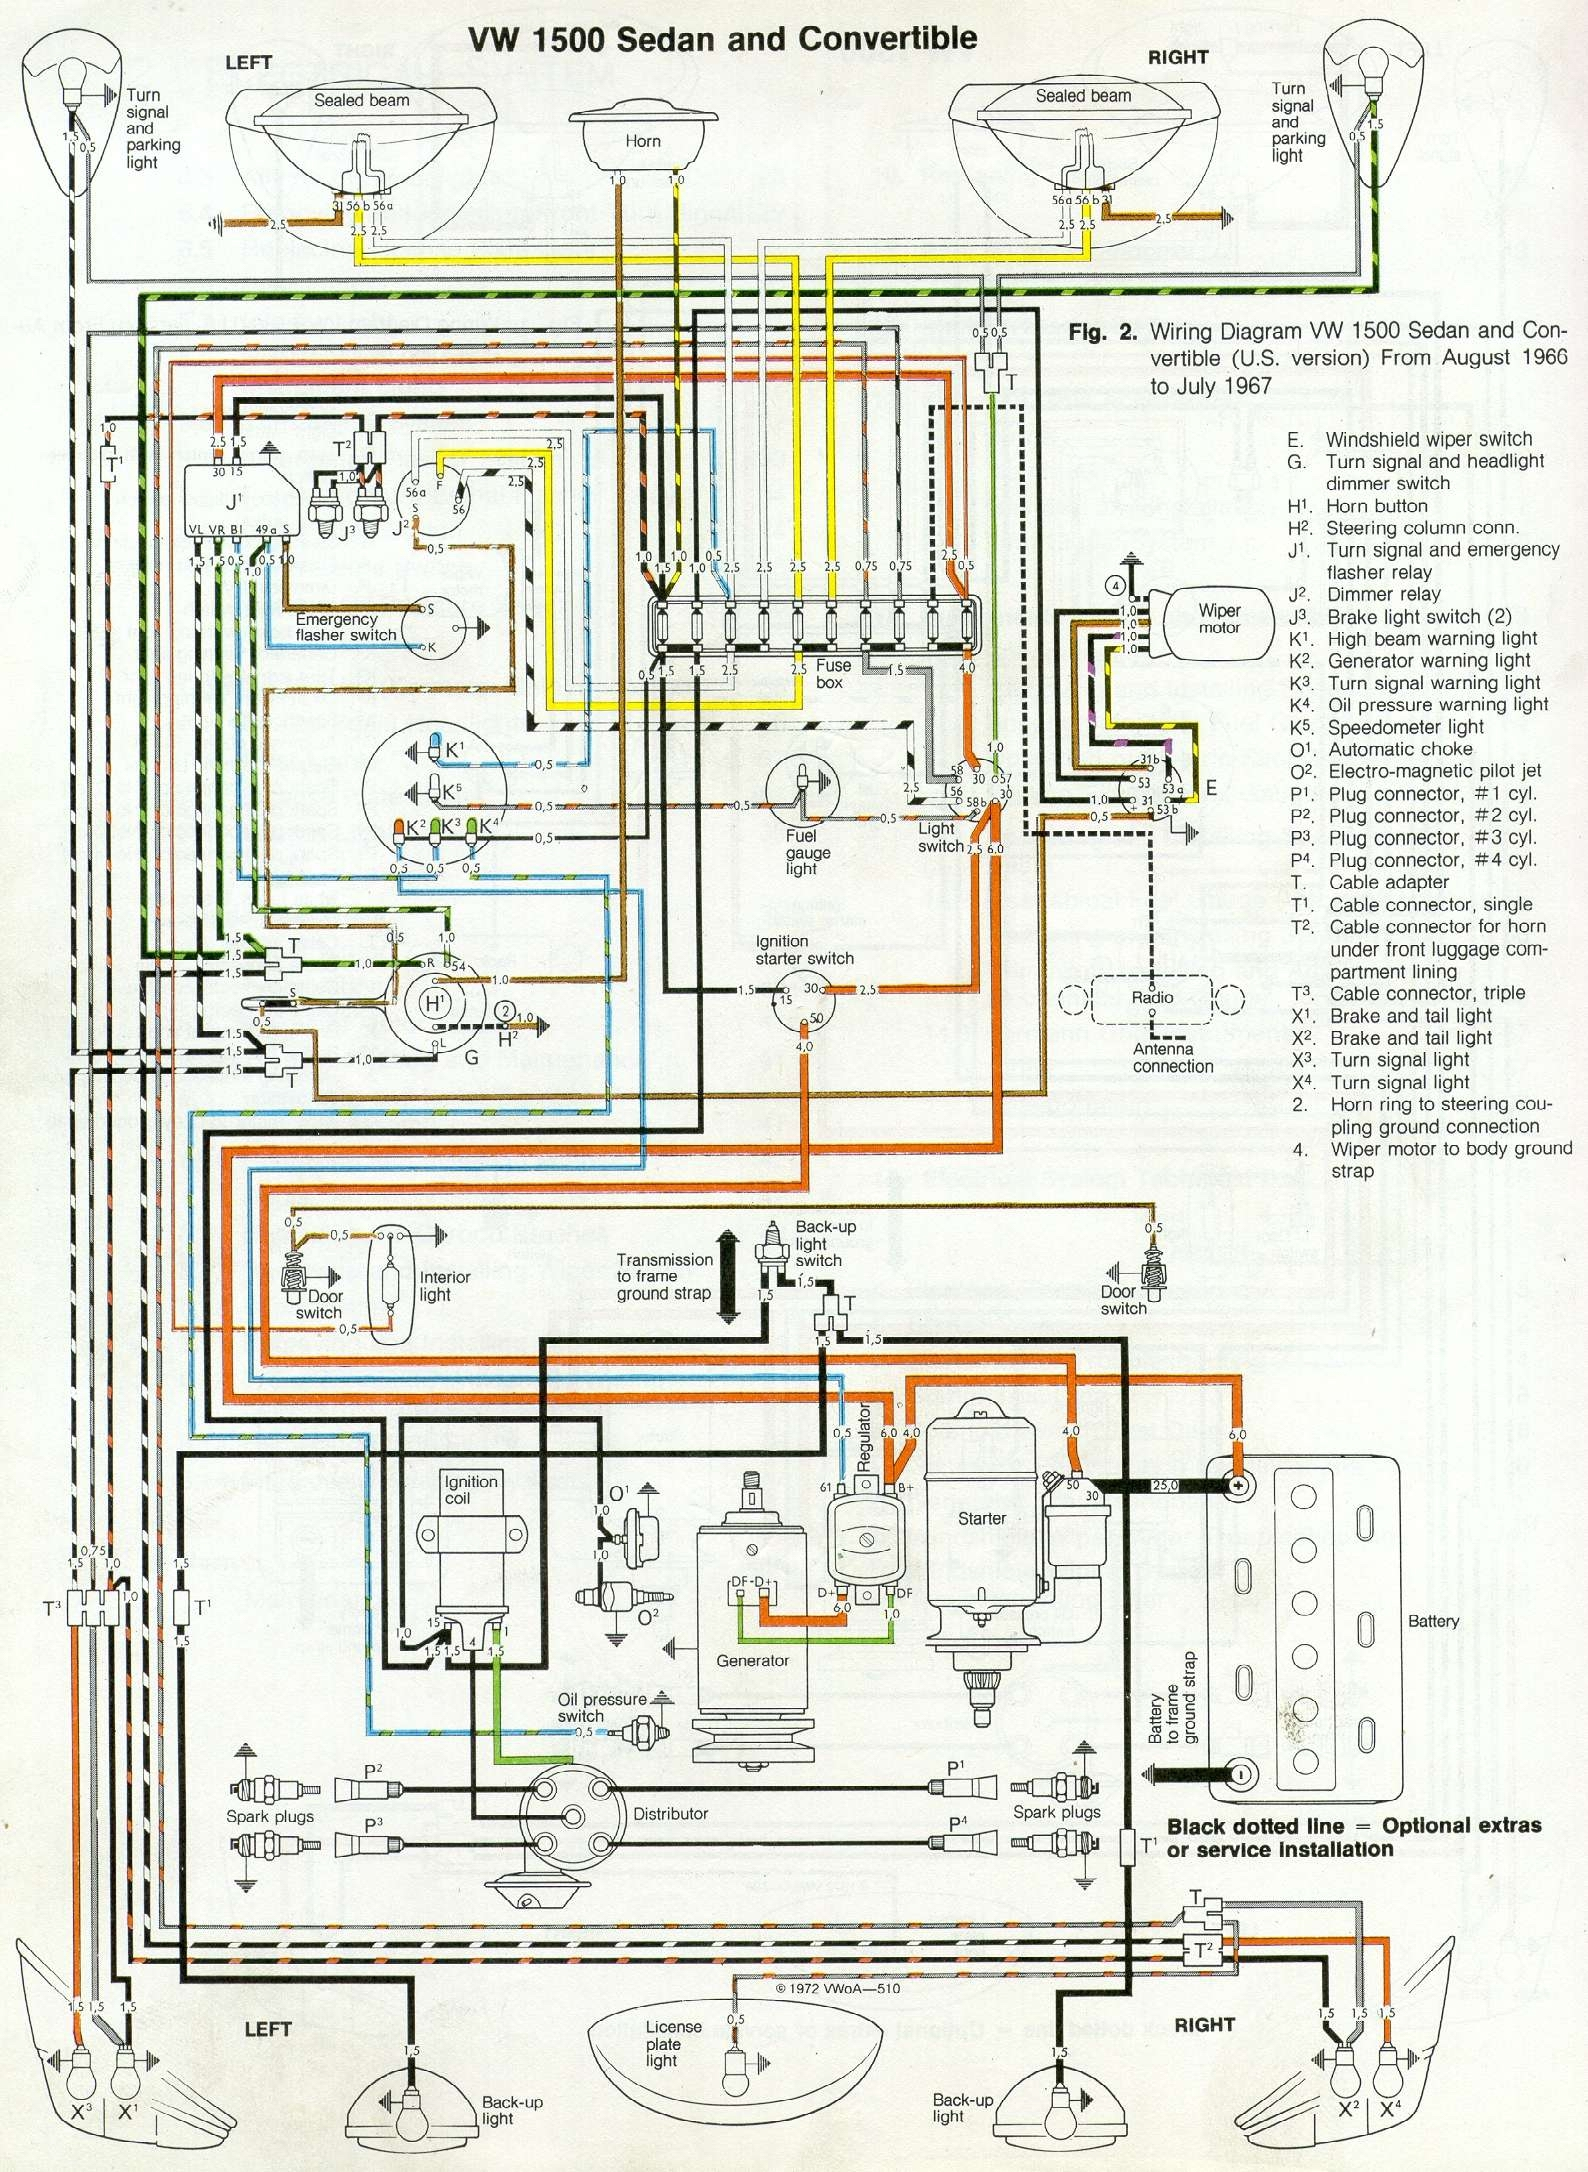 66 and '67 VW Beetle Wiring Diagram | 1967 VW Beetle1967 VW Beetle